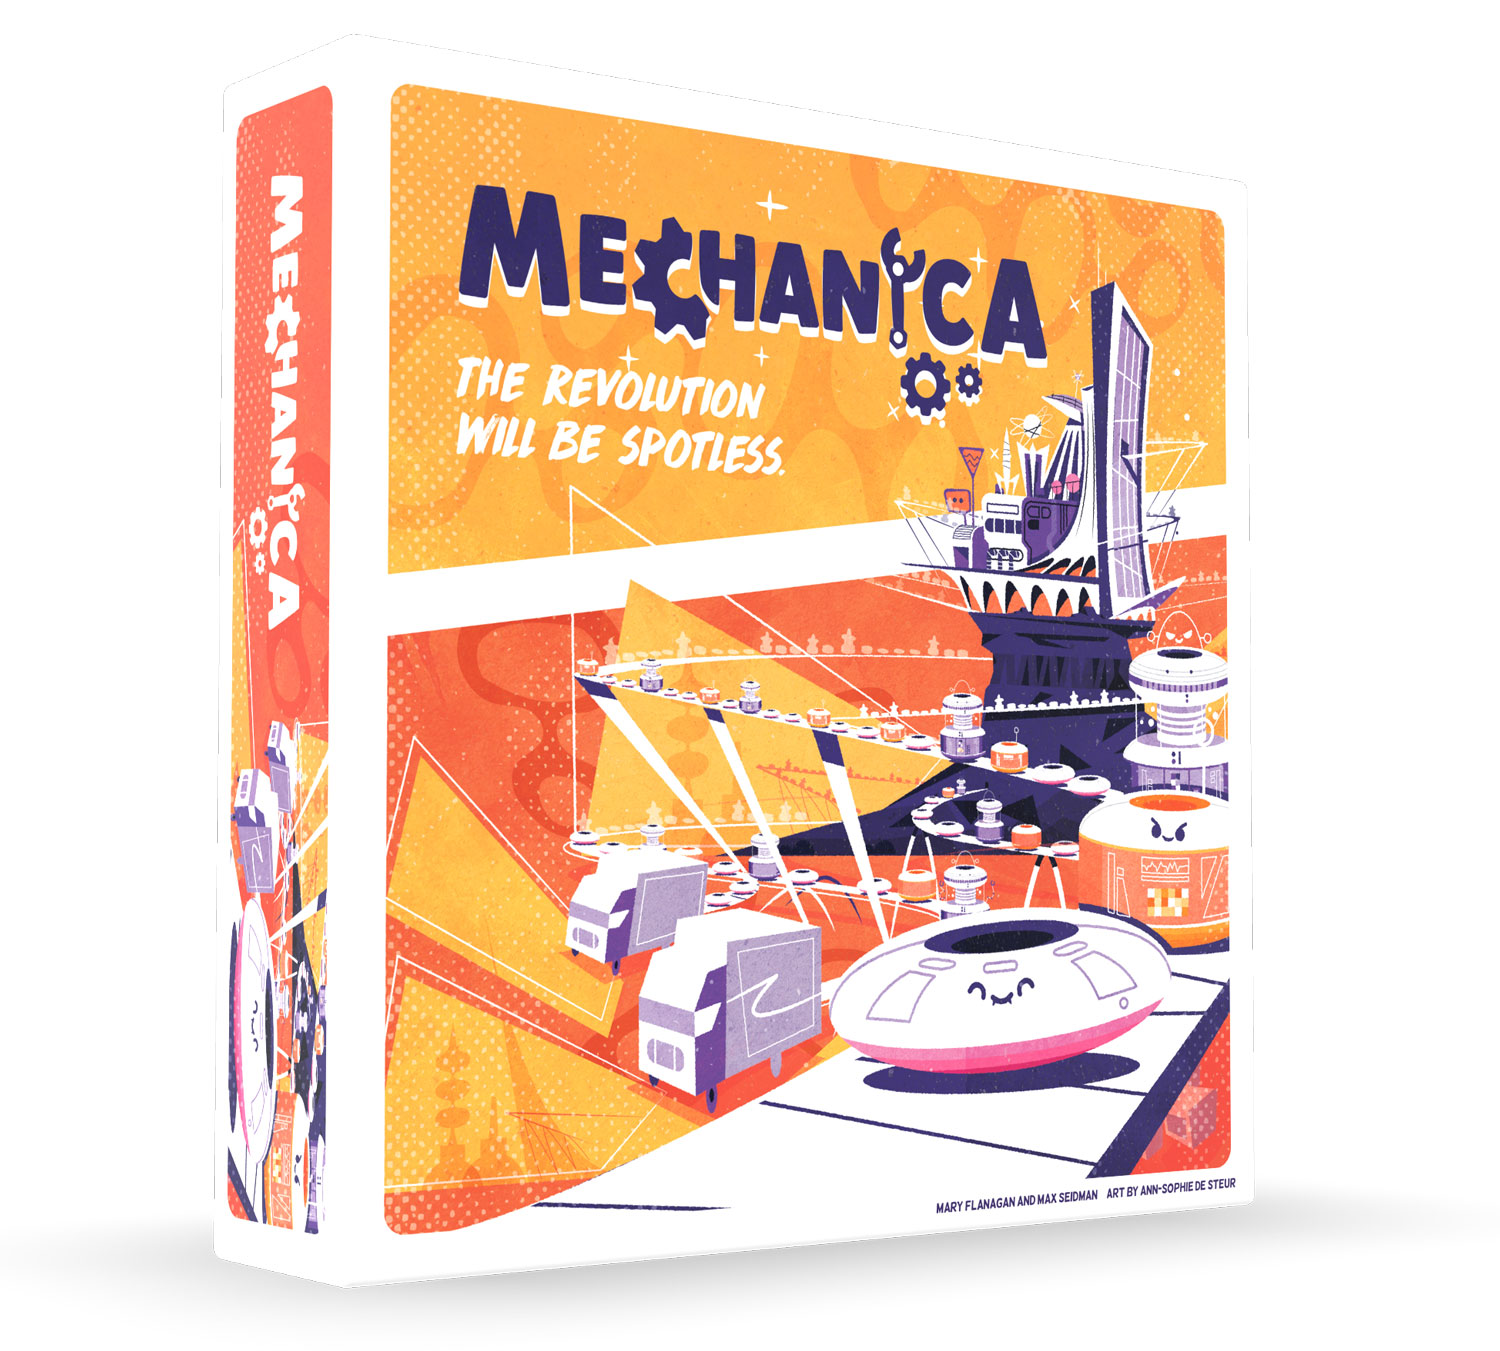 Mechanica box mockup